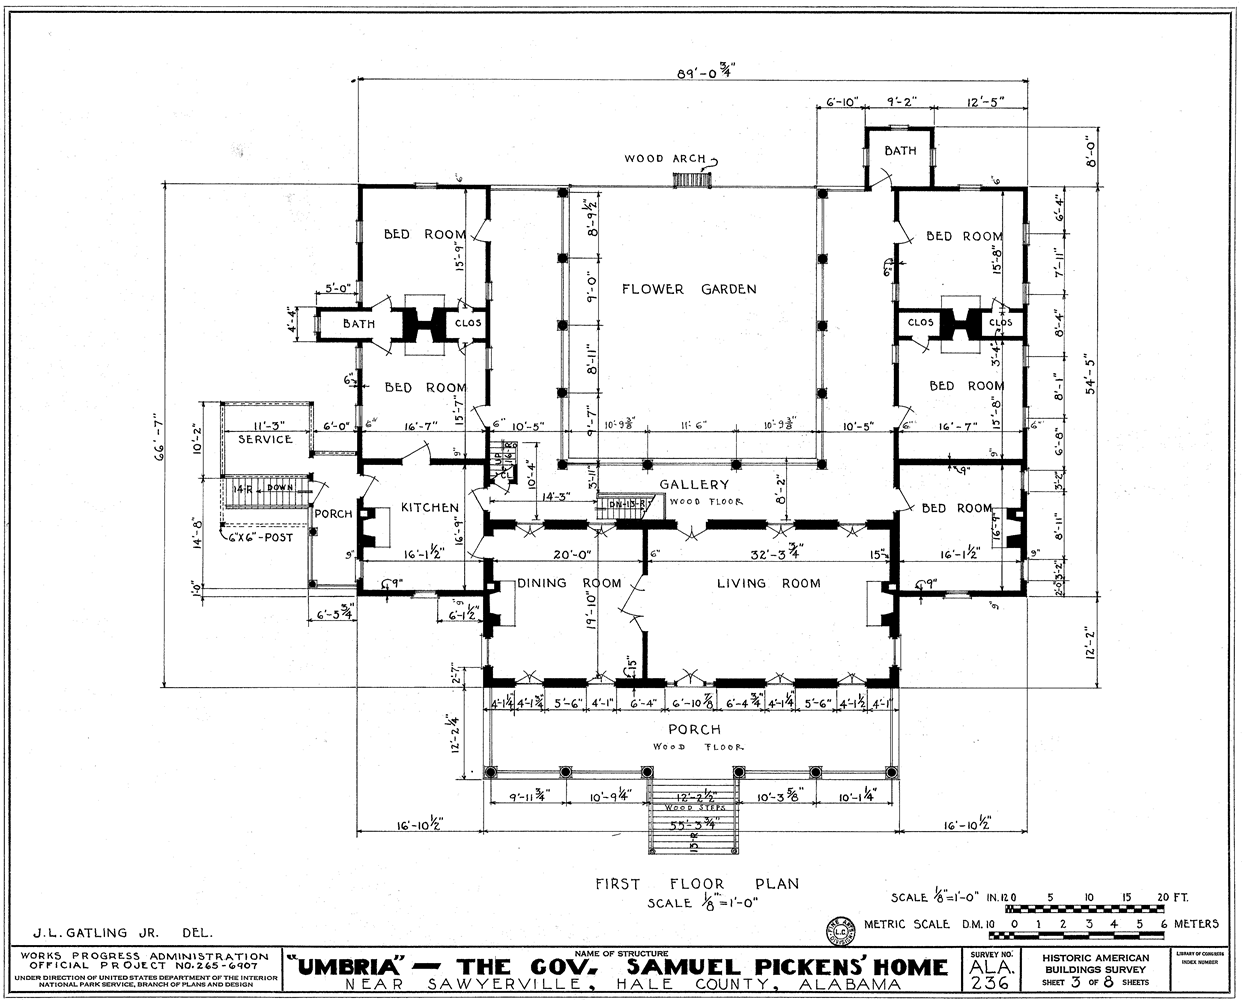 House plans and design architectural house designs floor for Architectural house plans